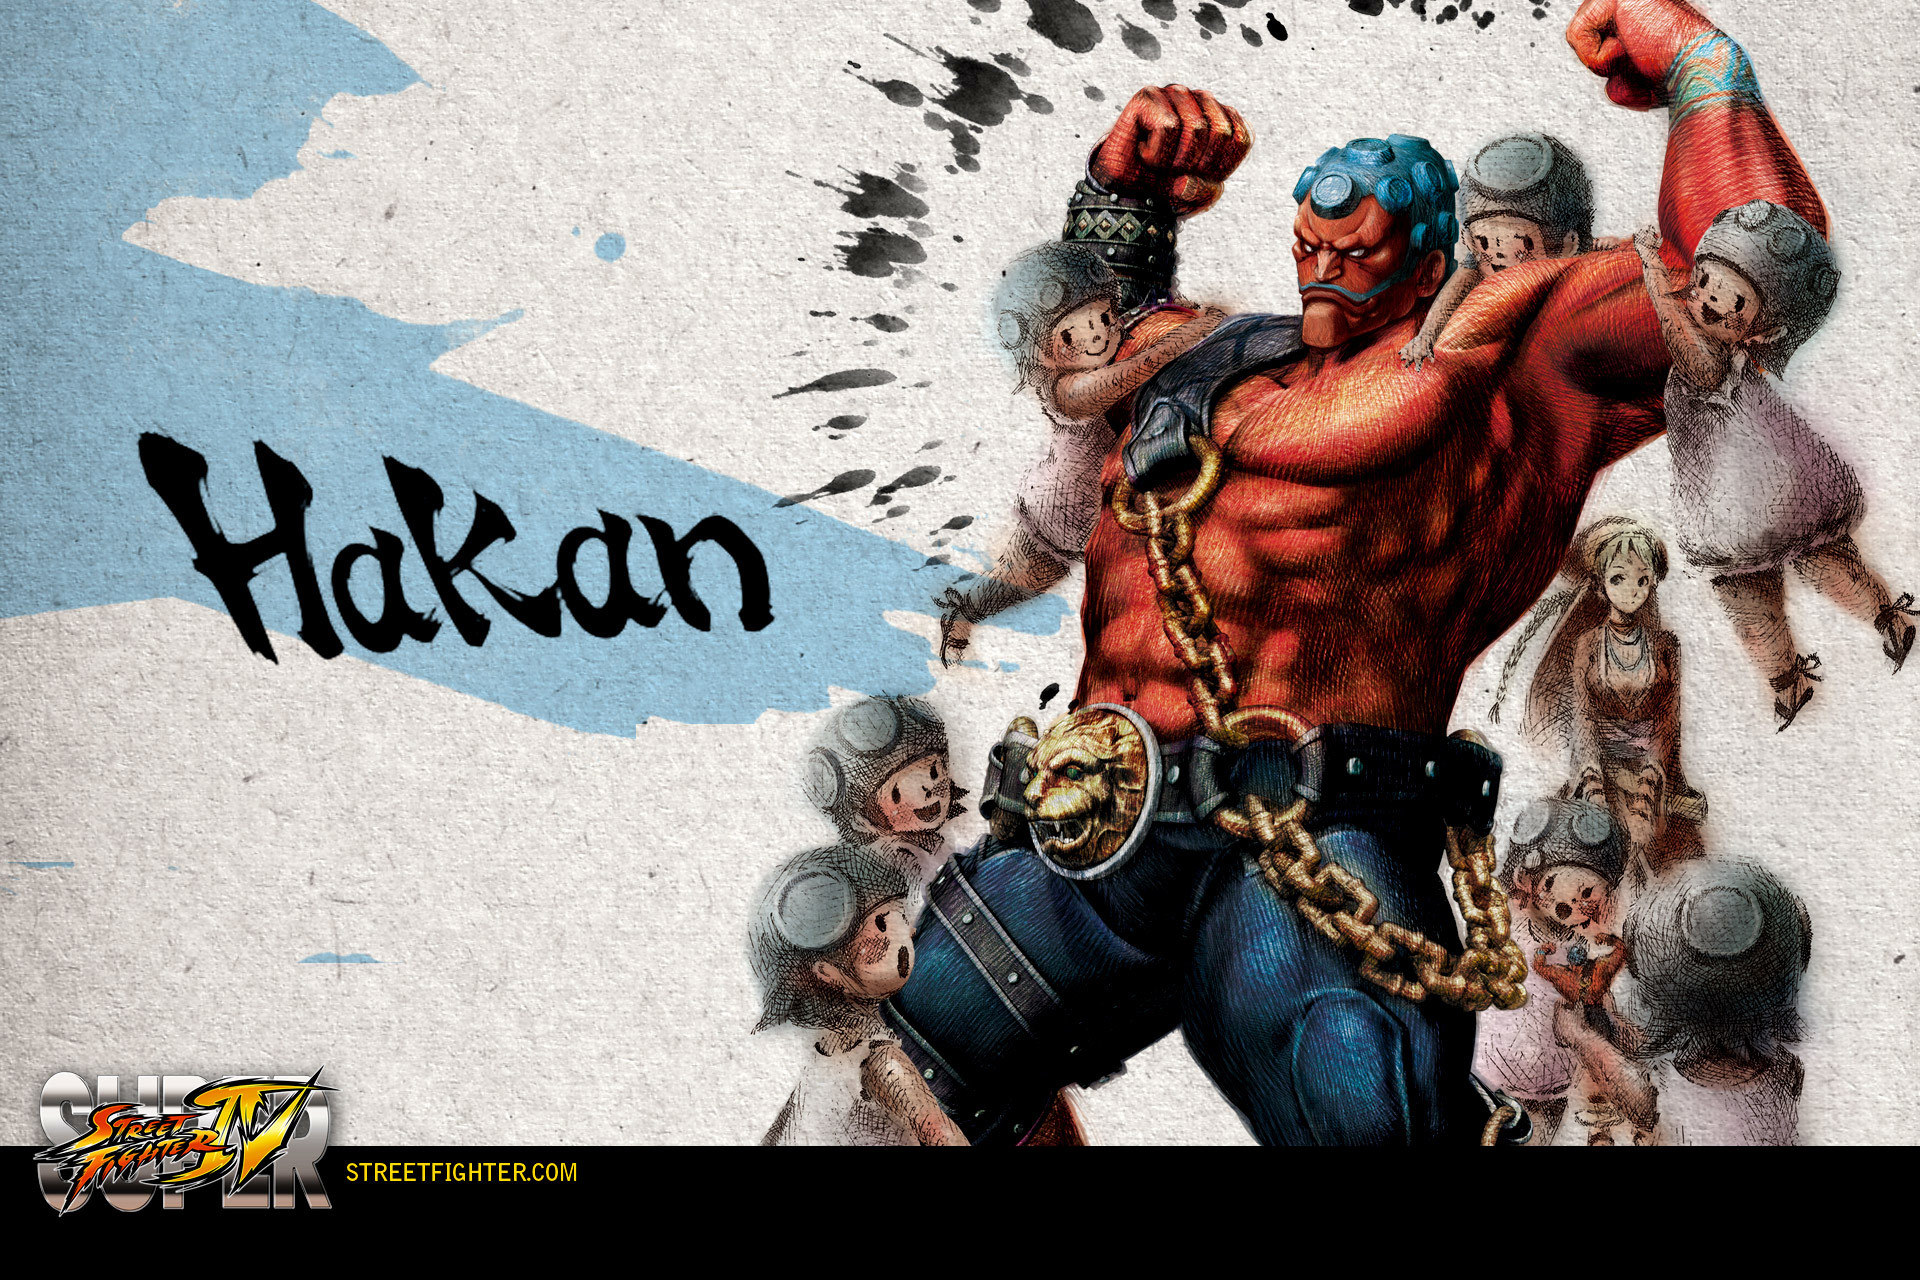 Street Fighter Wallpaper on Street Fighter Iv Hd Wallpaper   General   822581